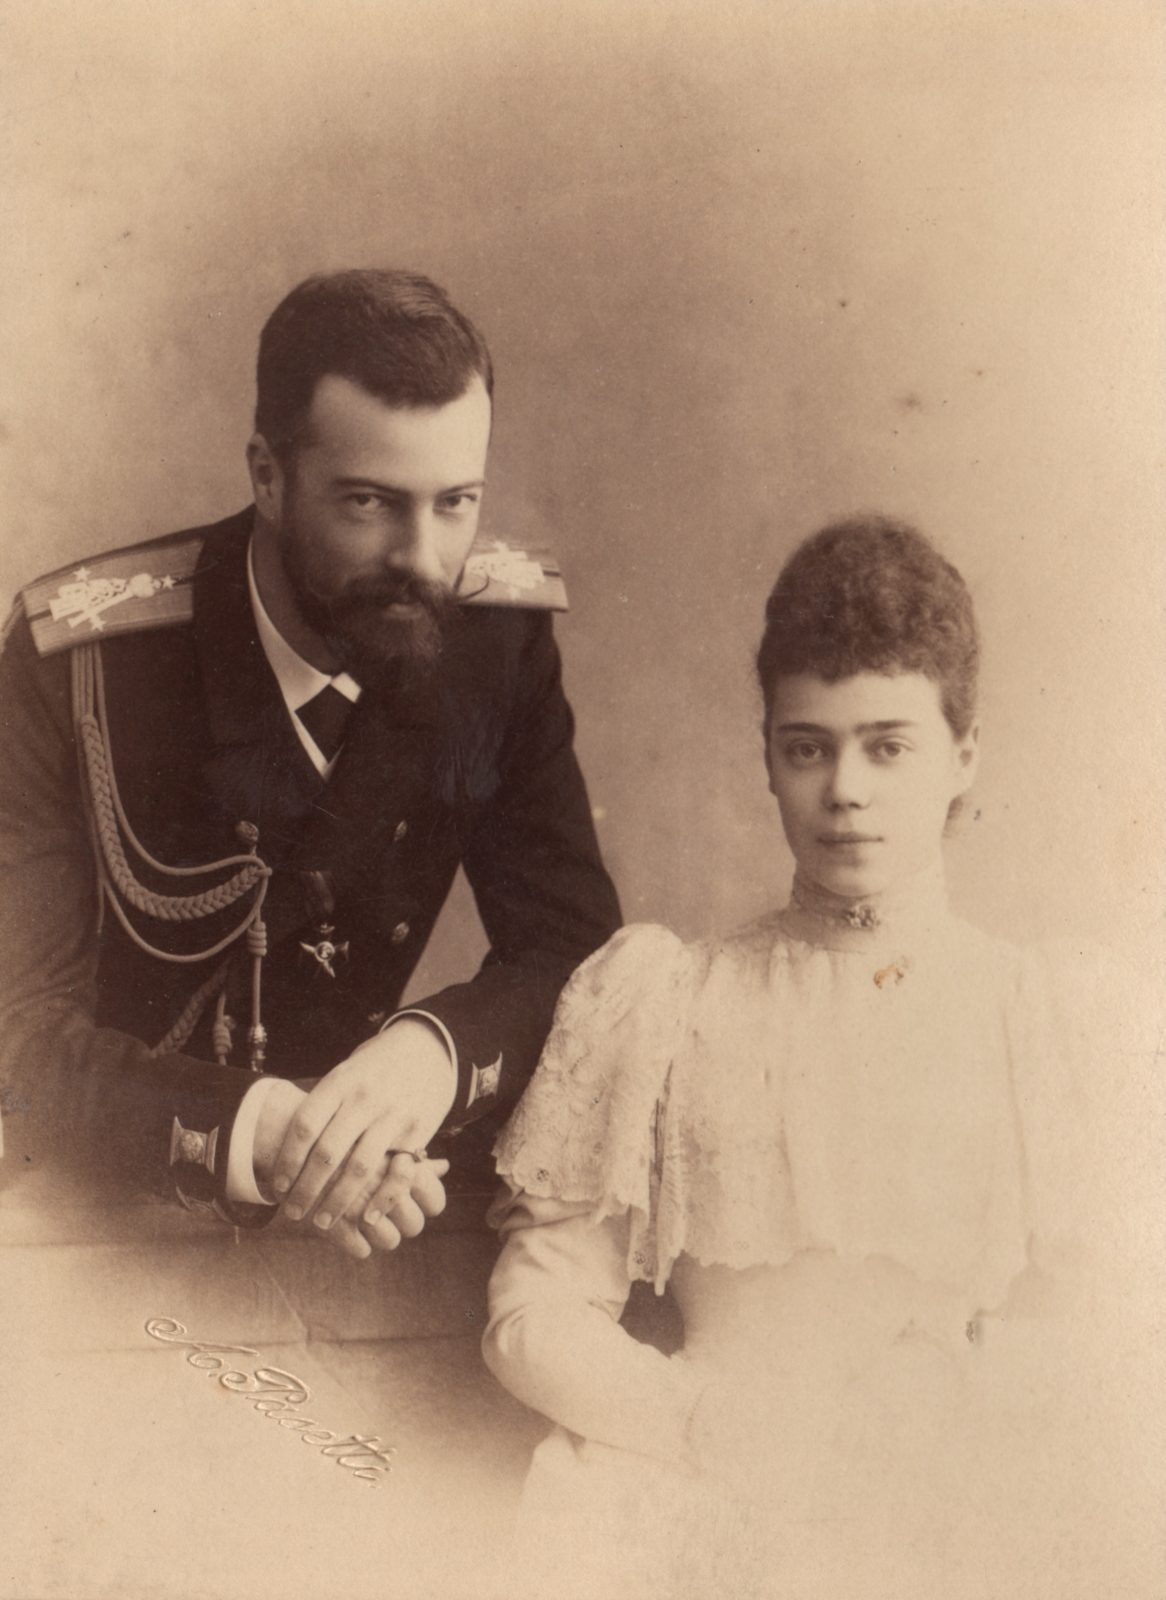 Grand Duchess Ksenia Alexandrovna and Grand Duke Alexander Mikhailovich.